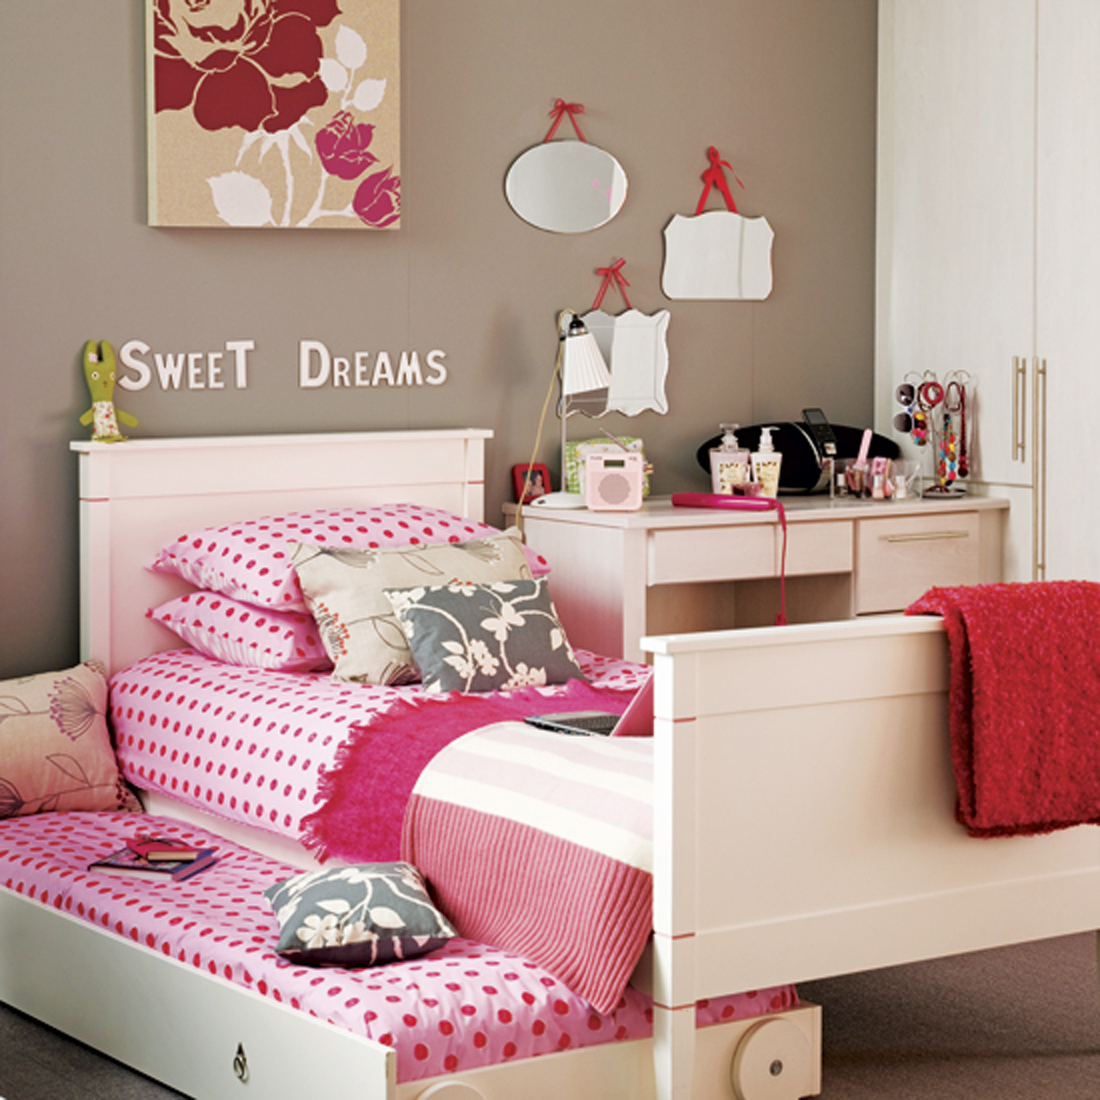 Fabulous Bedroom For Twin Girls Decoration Sets And Furniture (View 11 of 12)